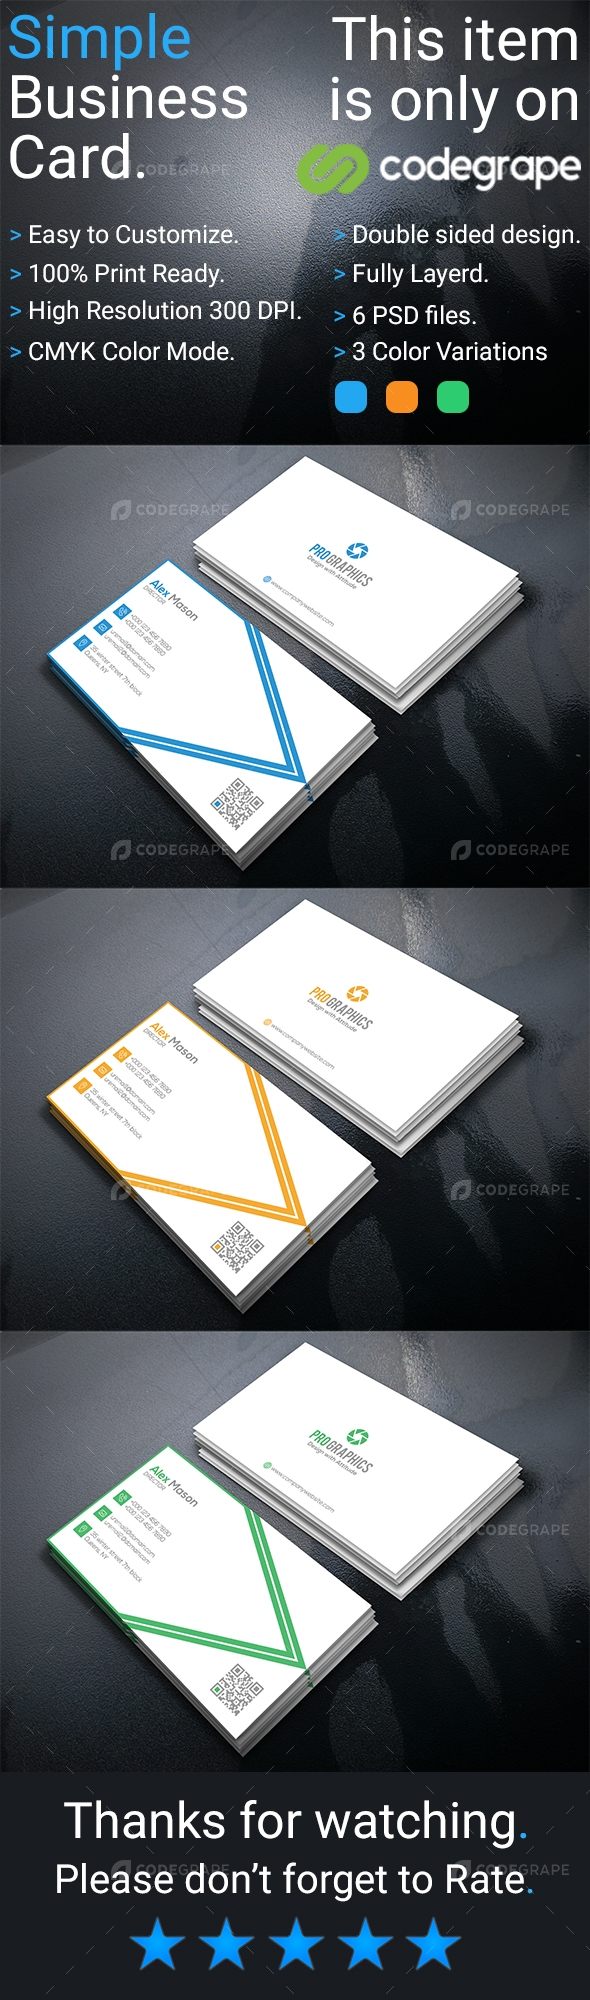 Simple Business Card Vol- 2